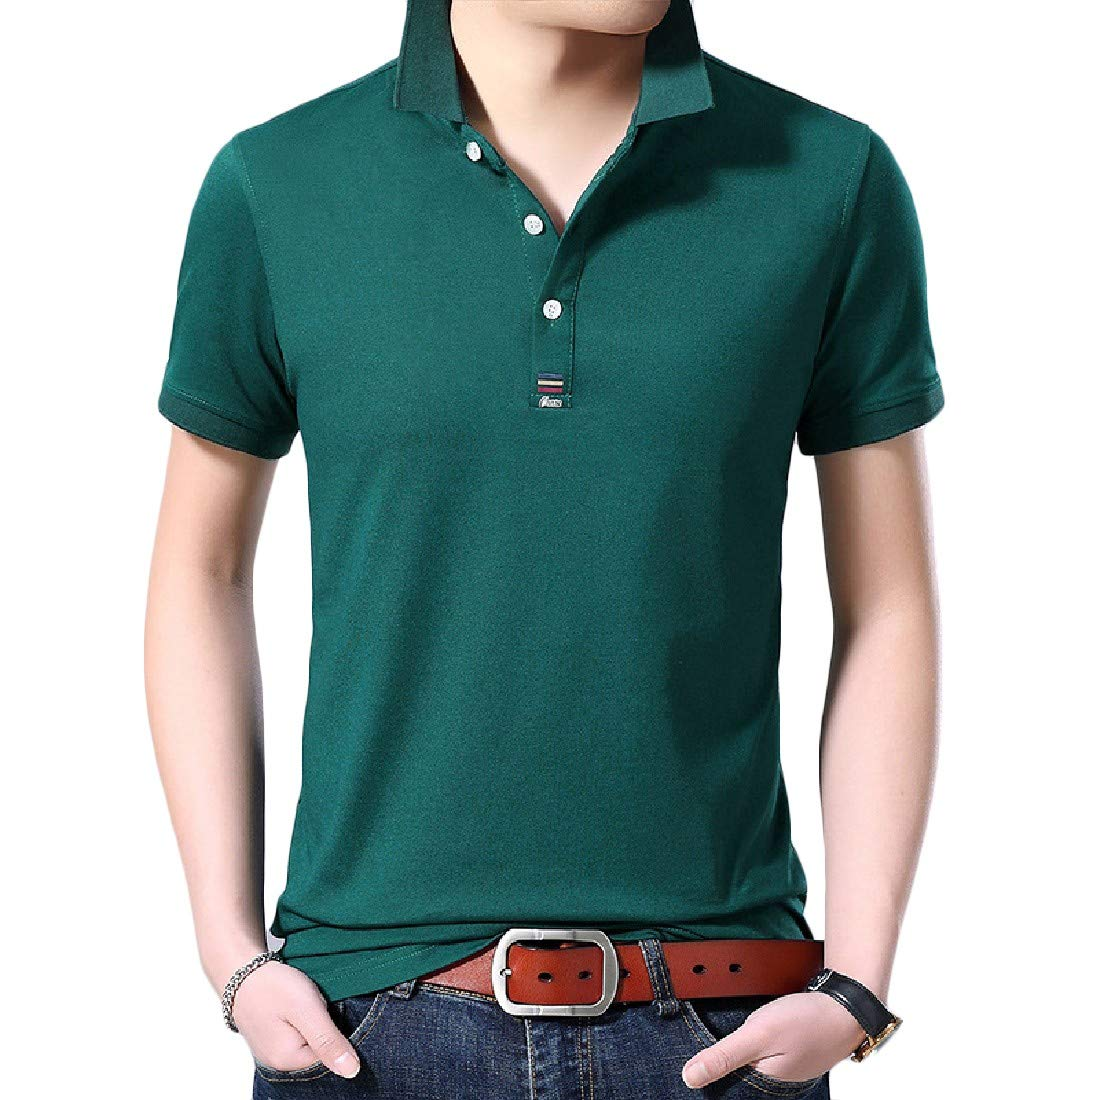 Wofupowga Men Short Sleeve Tee Solid Color Top Polos Shirt Athletic T-Shirt